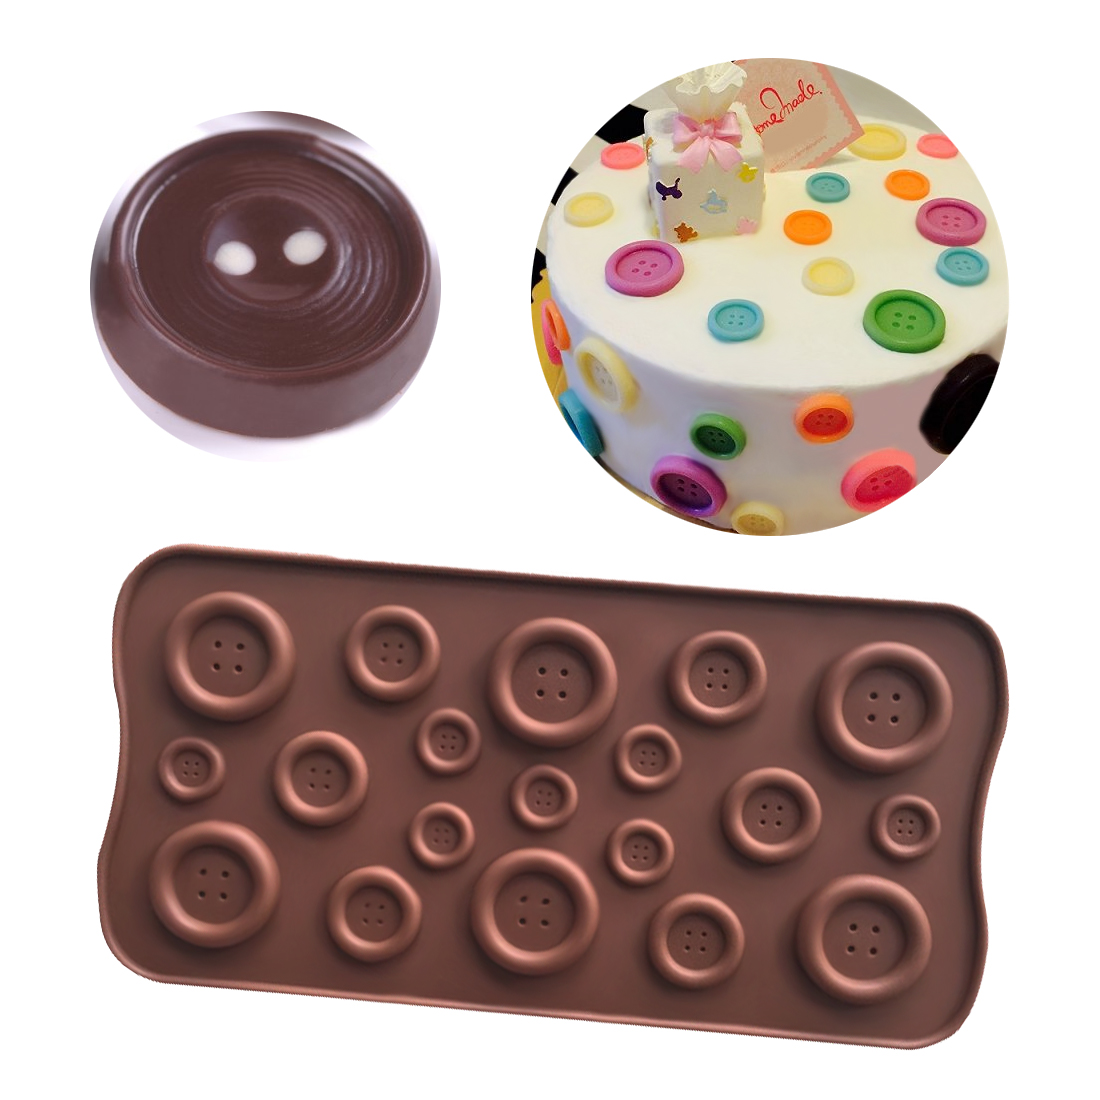 Cute Button Shape Silicone Mold Jelly Soap Chocolate Mould DIY Baking Cake Decorating Tools Kitchen Accessories Bakeware